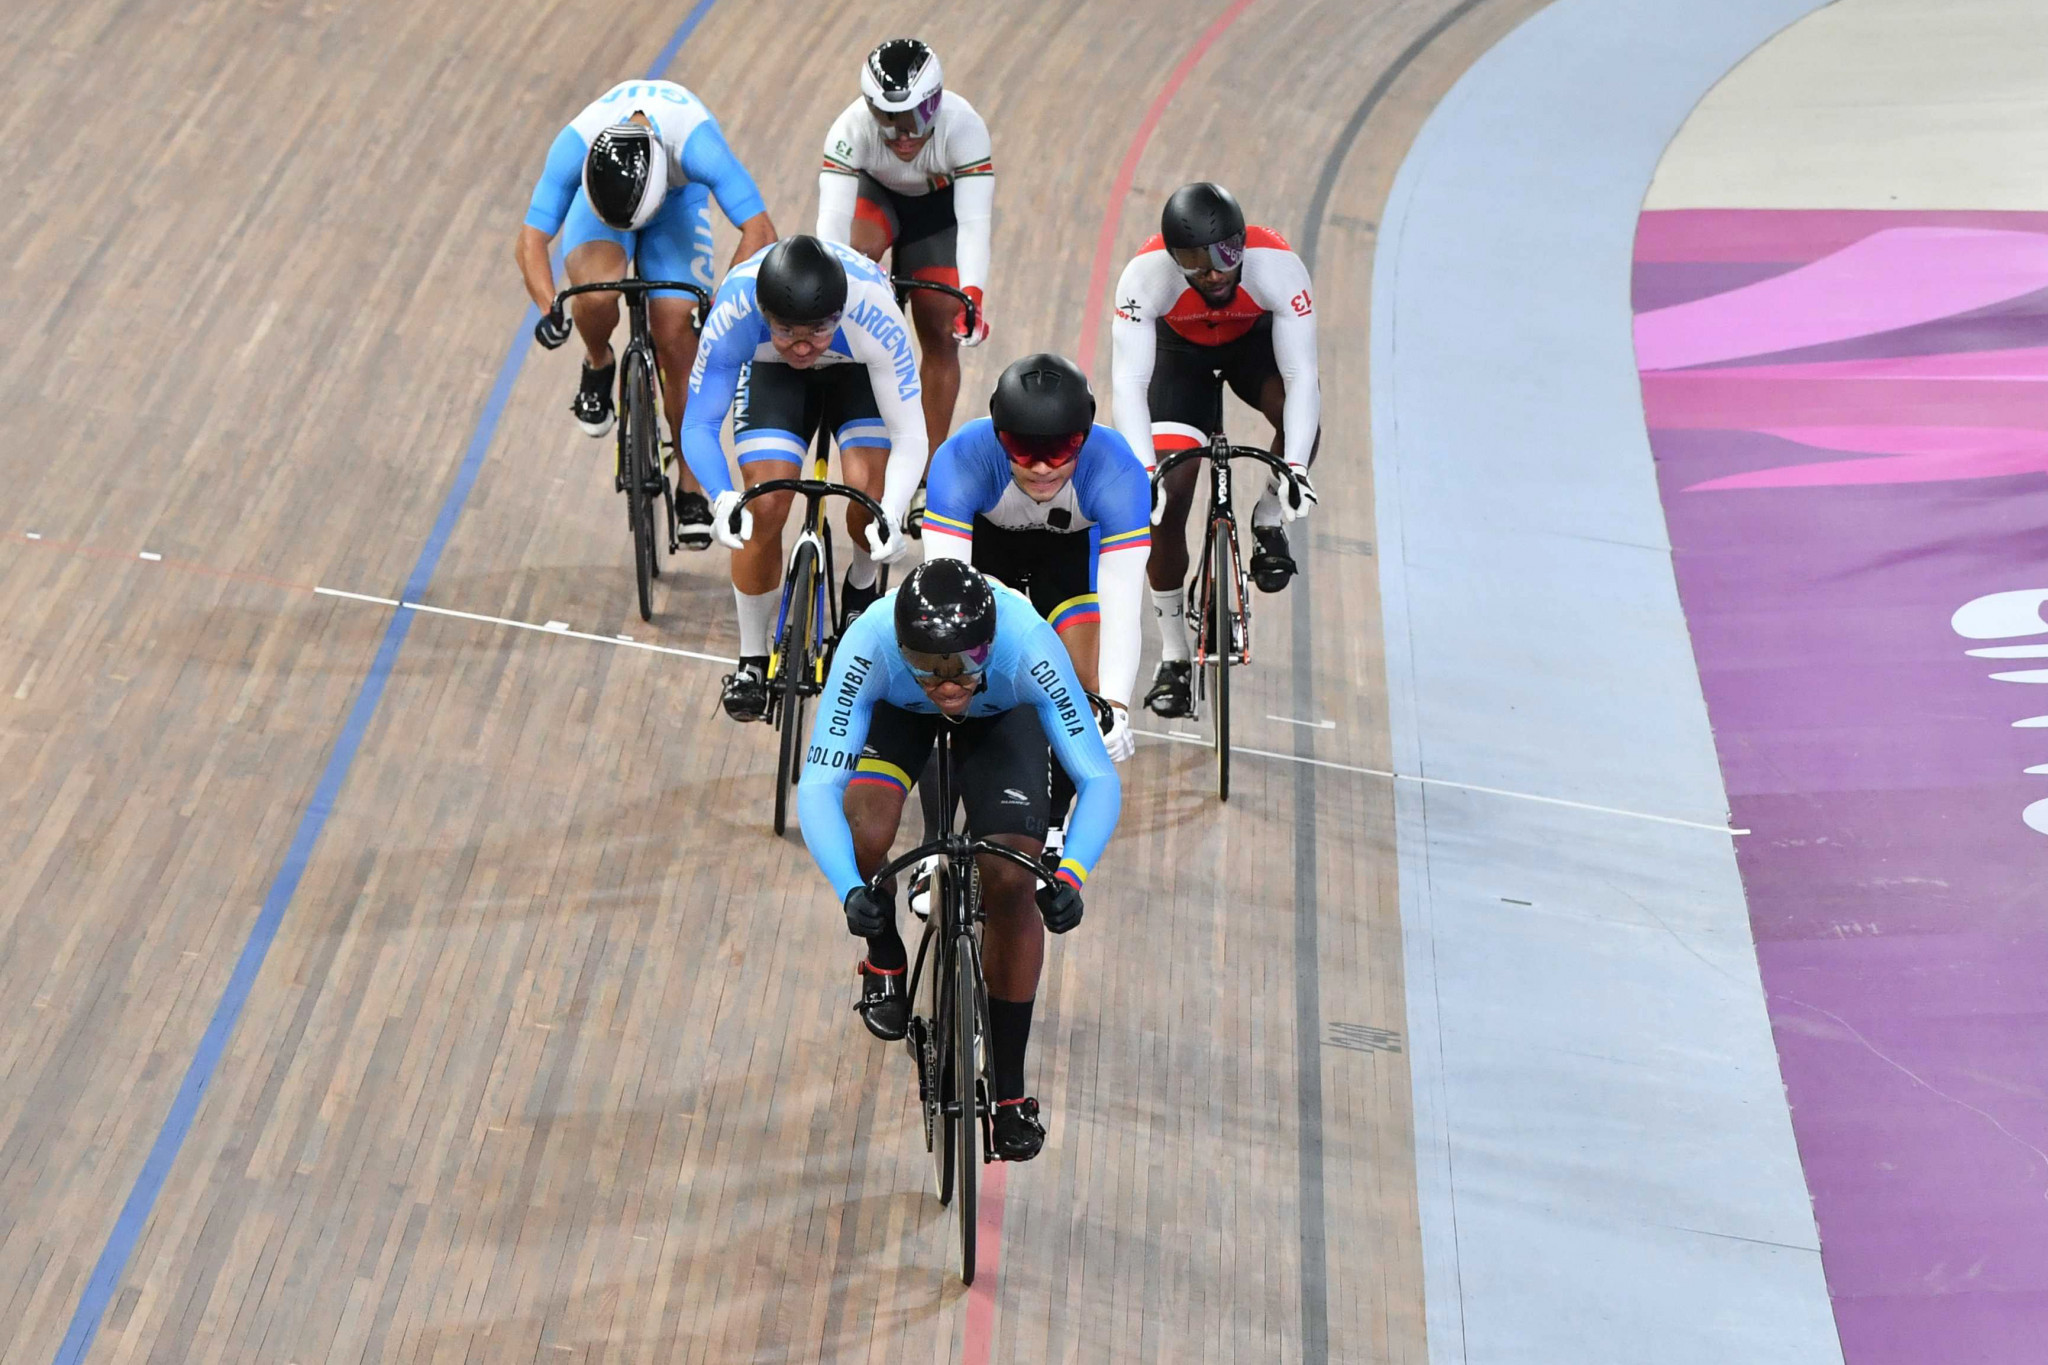 Elite young riders primed for World Junior Track Cycling Championships